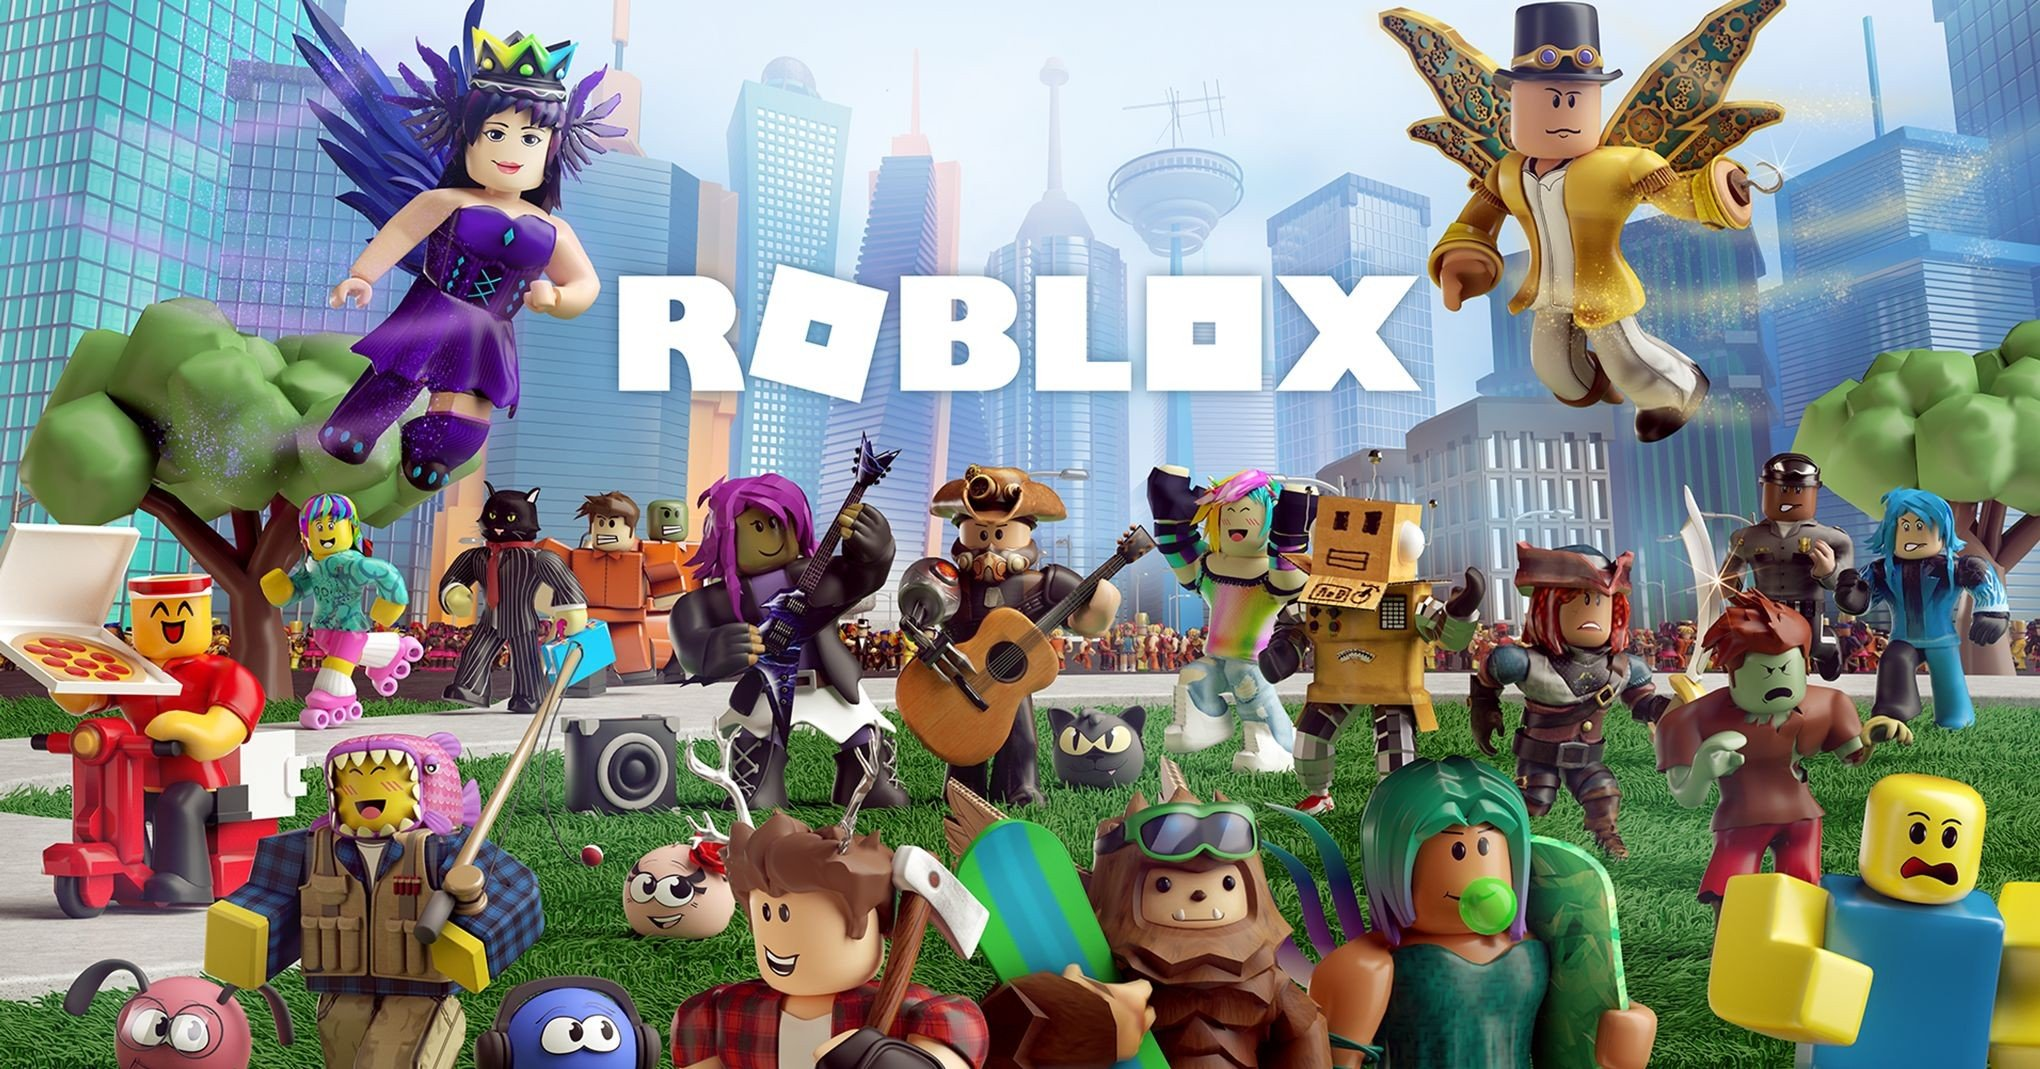 Roblox Hacks and Cheats - Wallhack, Noclip and Aimbot for 2021 - Download Roblox Hacks and Cheats - Wallhack, Noclip and Aimbot for 2021 for FREE - Free Cheats for Games